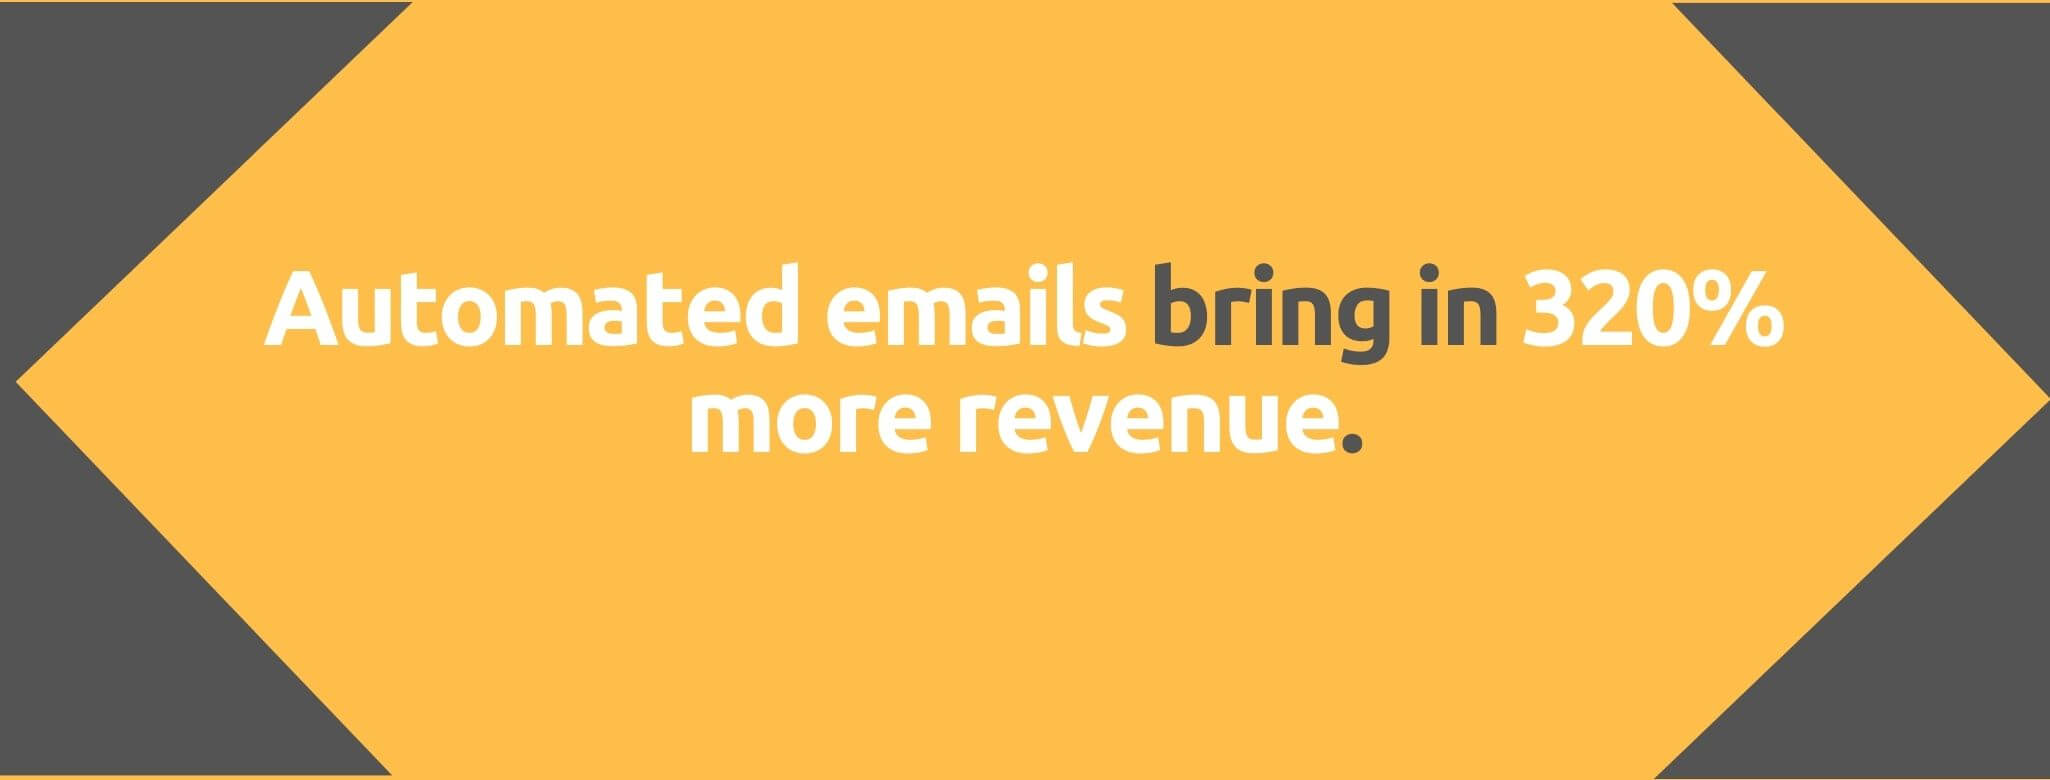 Automated emails bring in 320% more revenue - 80+ Email Marketing Stats - Replyco Helpdesk Software for eCommerce